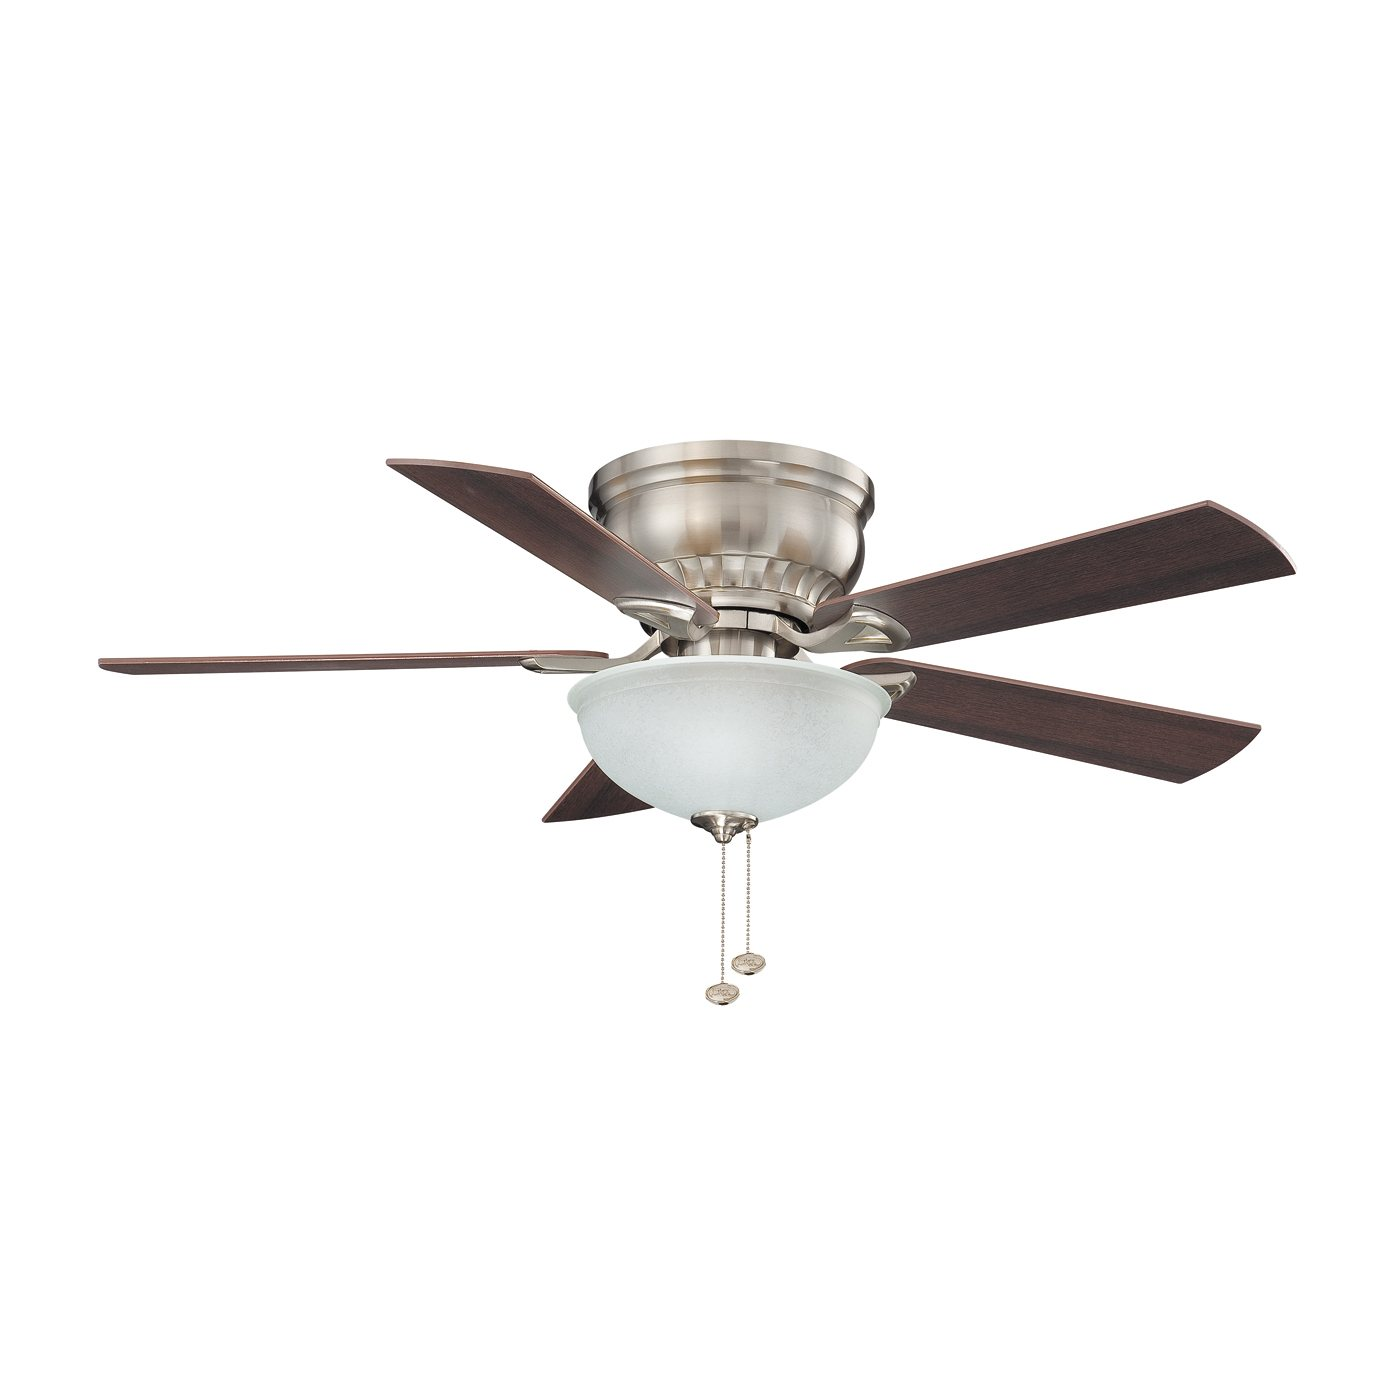 Surface mount ceiling fan top 10 ideal for small spaces warisan lighting - Small space ceiling fans pict ...